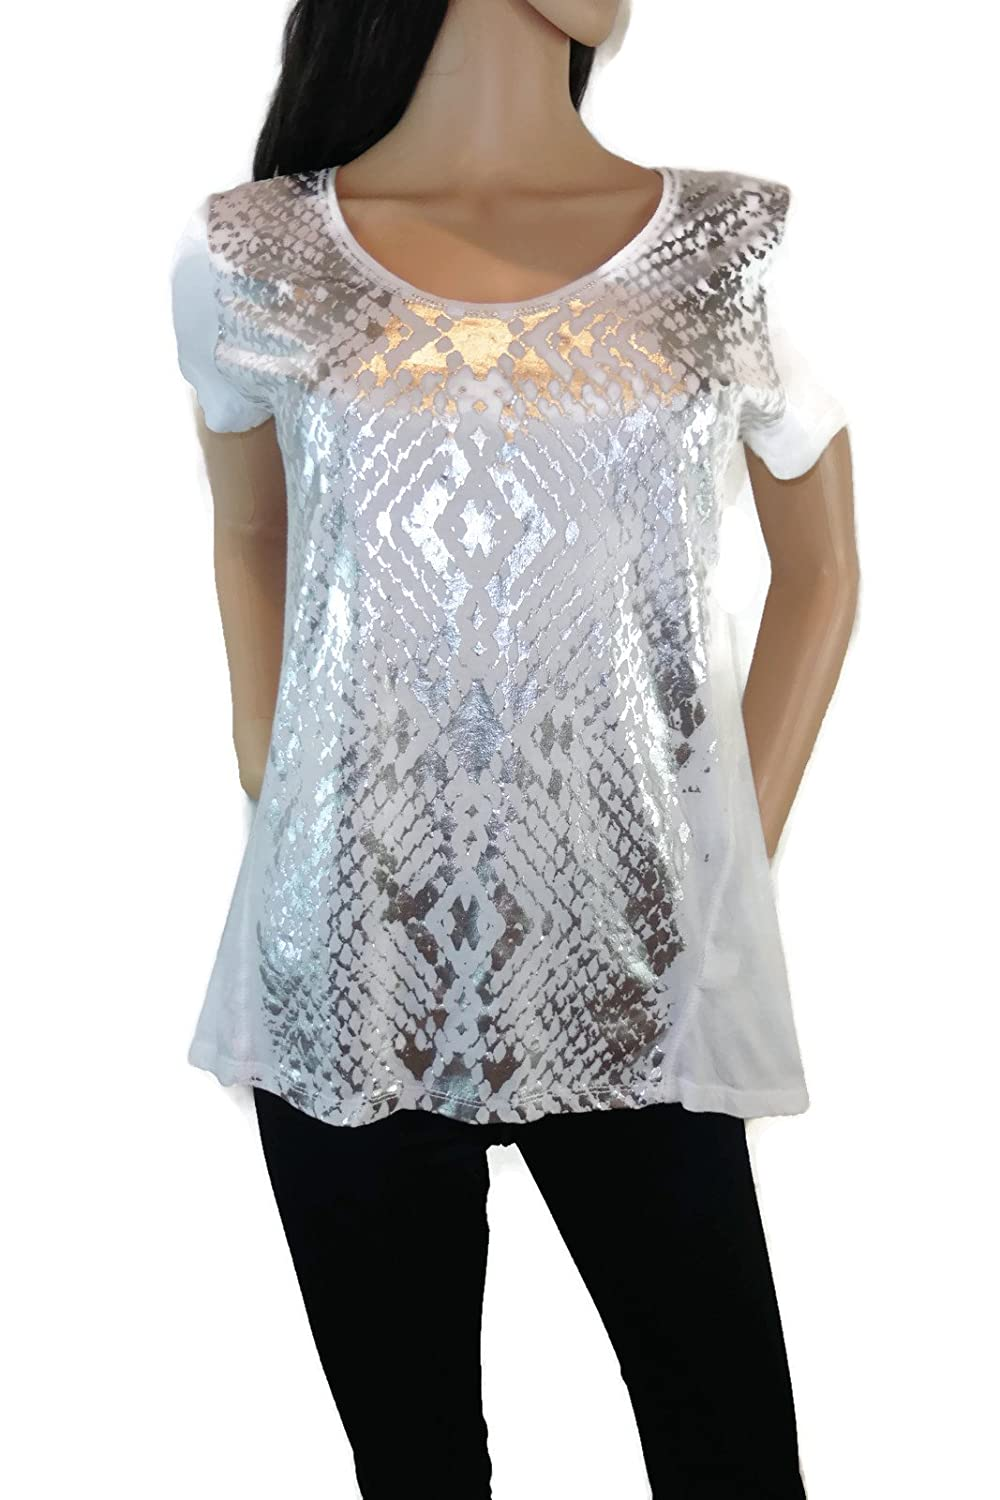 DKNY Jeans Womens Short Sleeve Scoop Neck Glitter Detailing 100% Cotton Tee White Silver